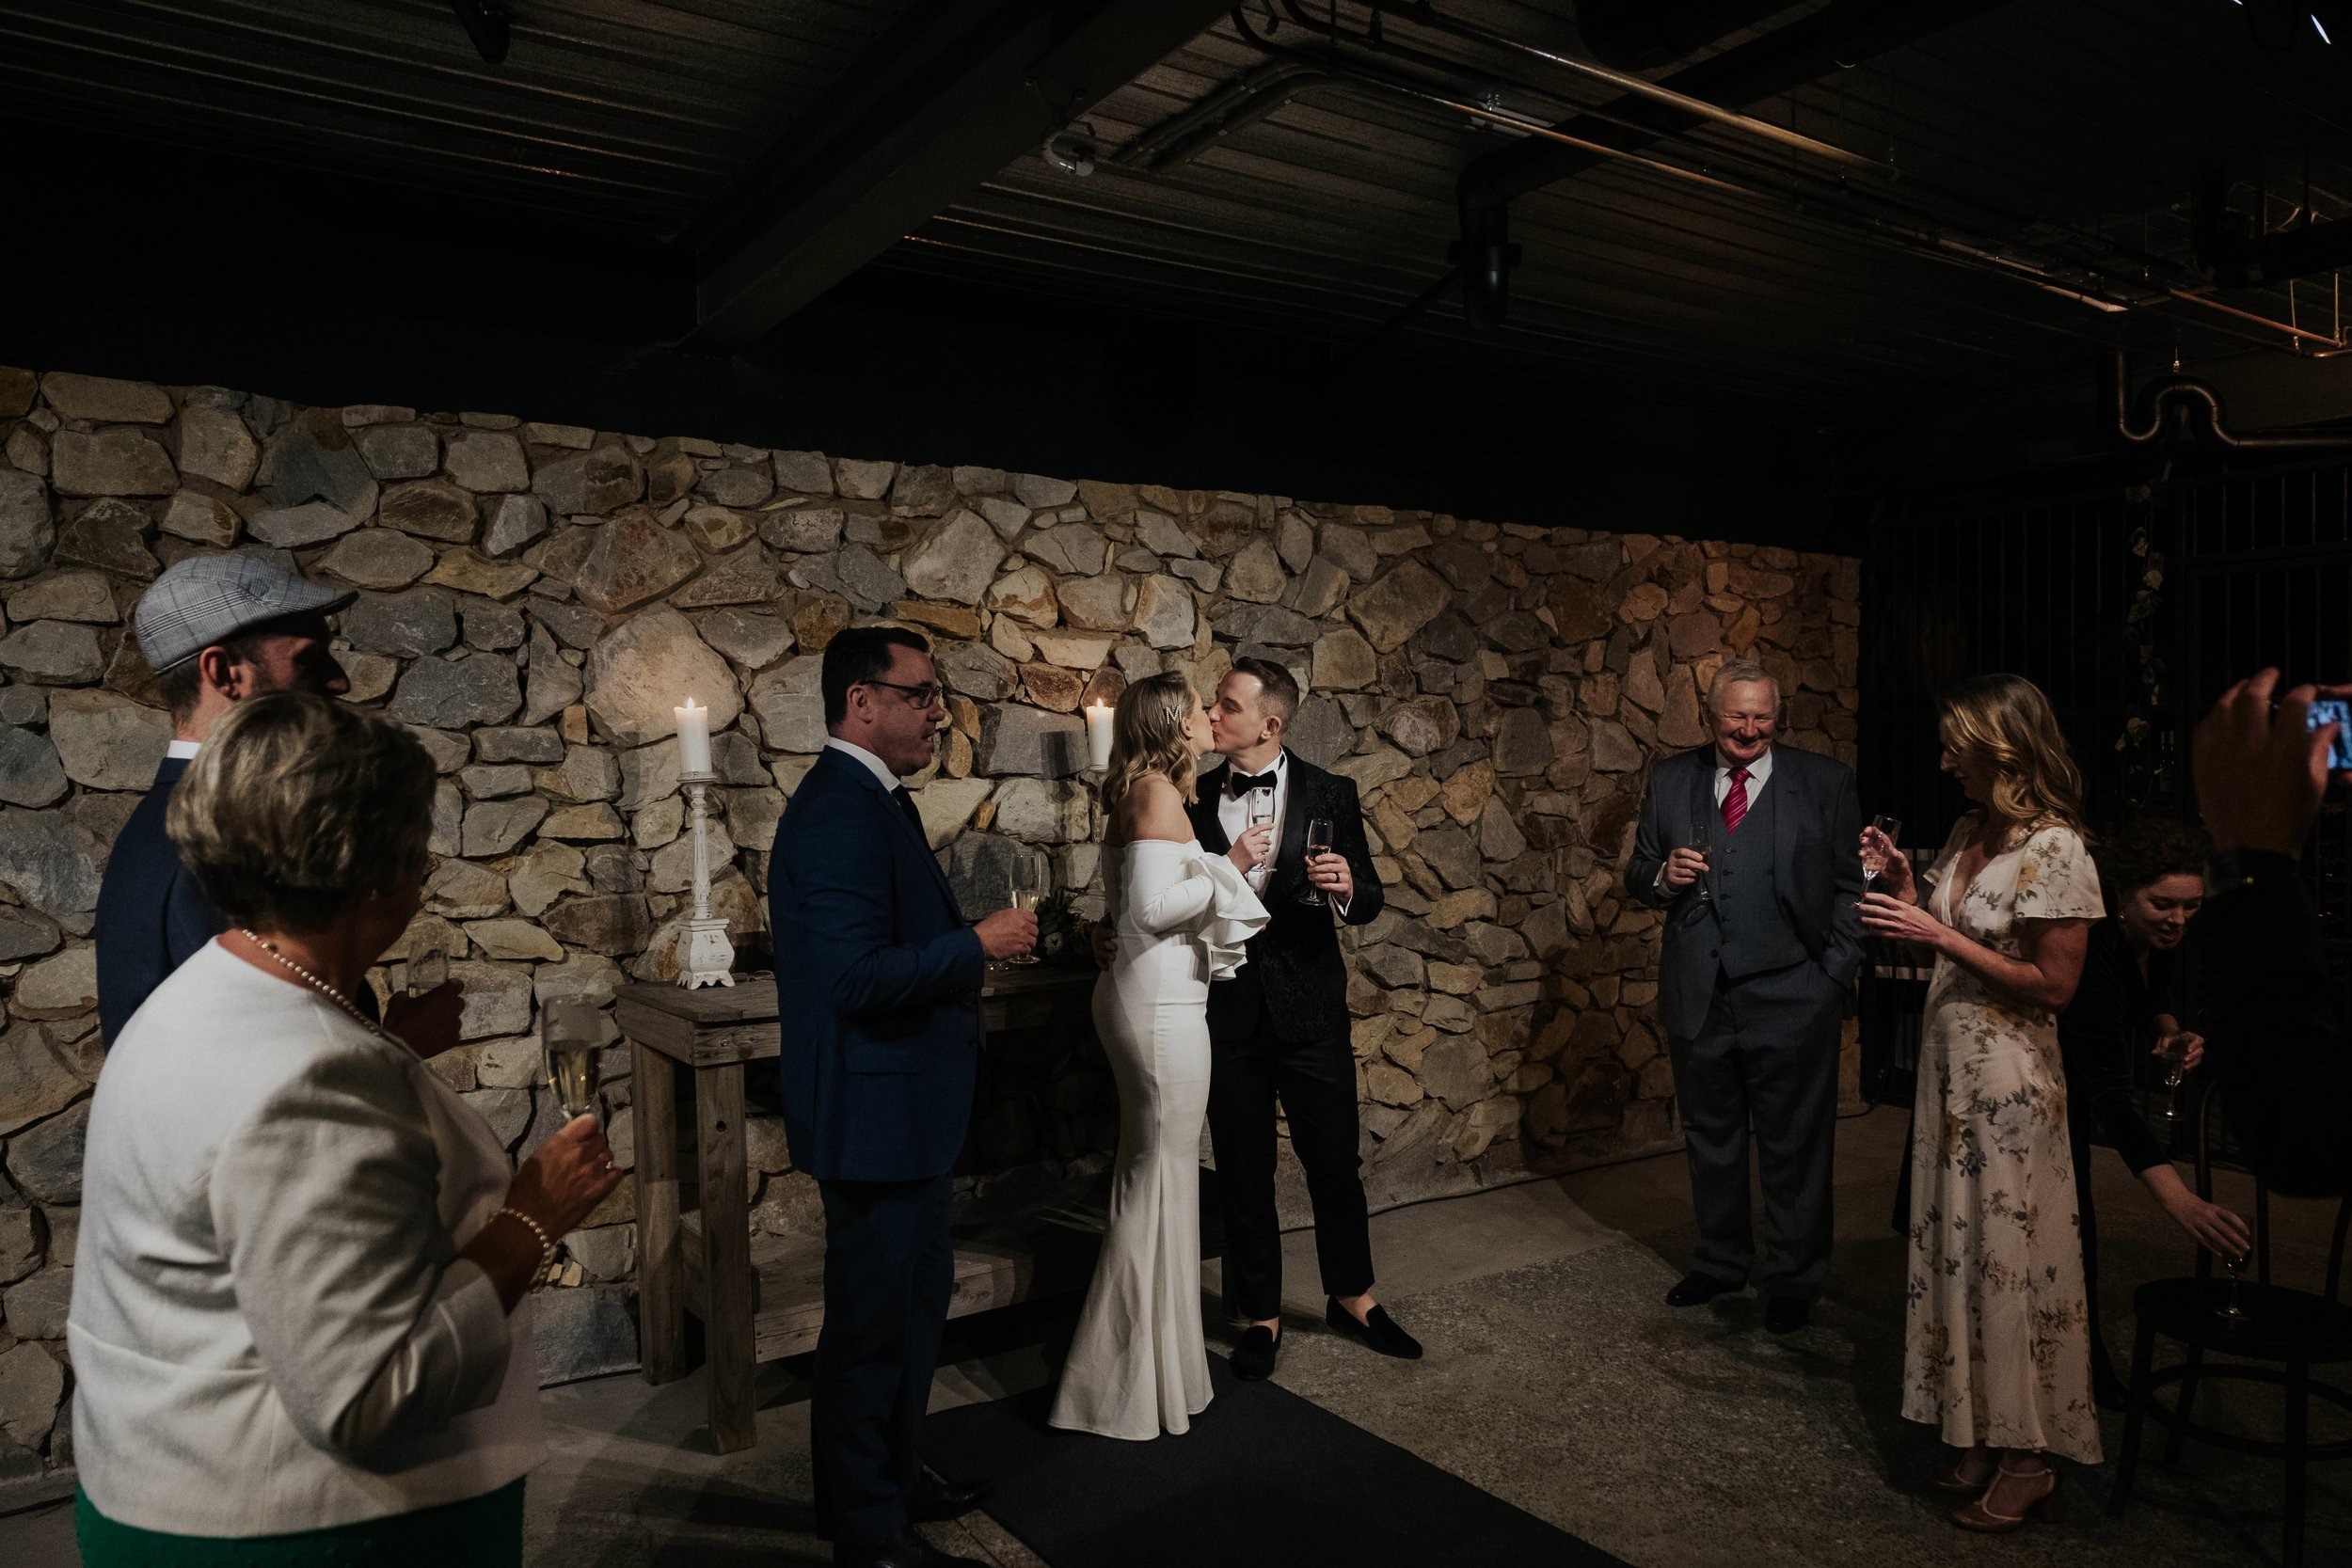 Grace and Mark Lake George Winery Canberra Wedding by Milton Gan Photography 207.jpg